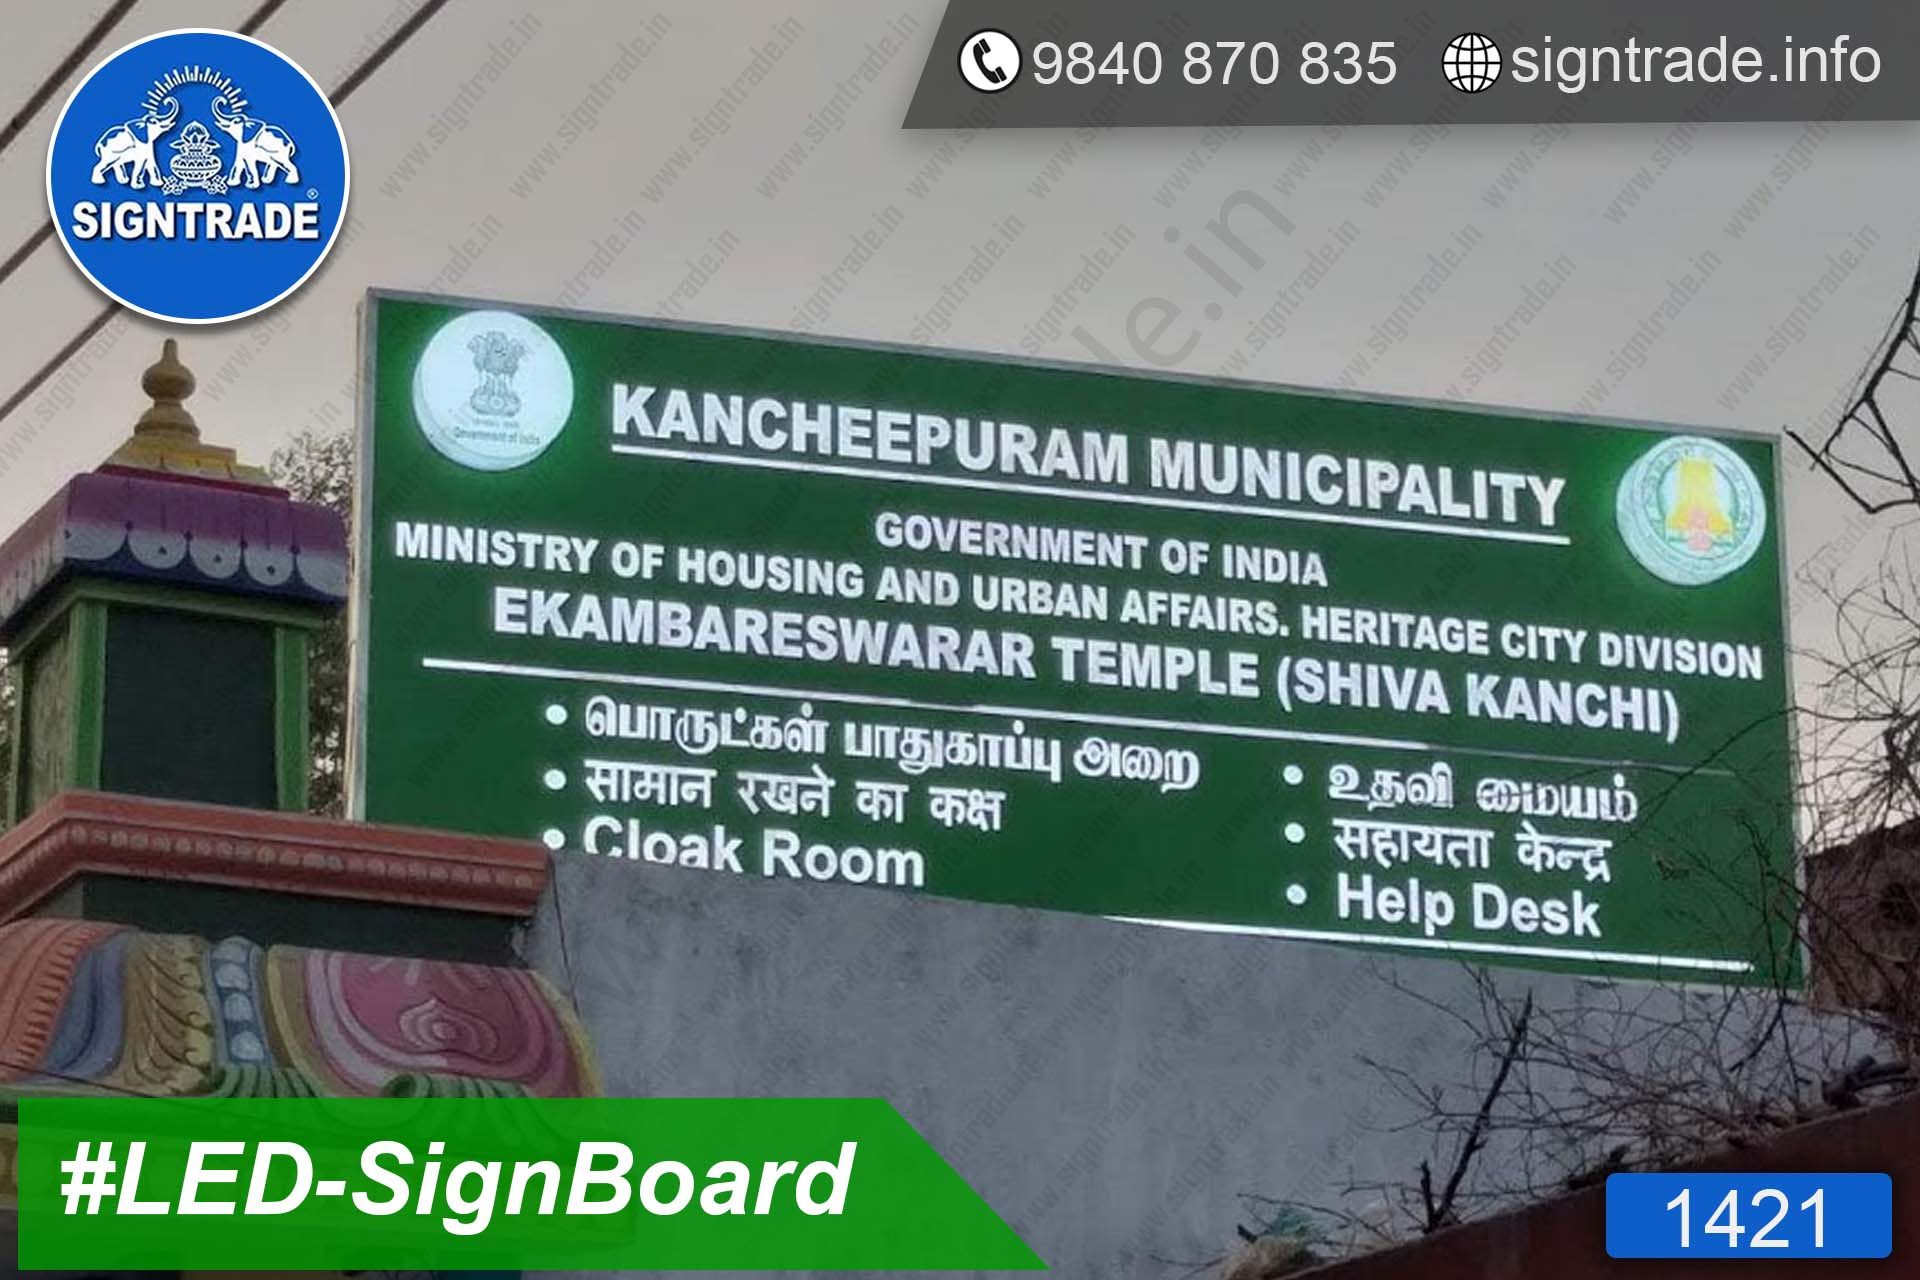 Kancheepuram Municipality (GOVT of India)- 1421, LED Sign Board, Sign Board, Acrylic Sign Board, Glow Sign Board, Custom Sign Board